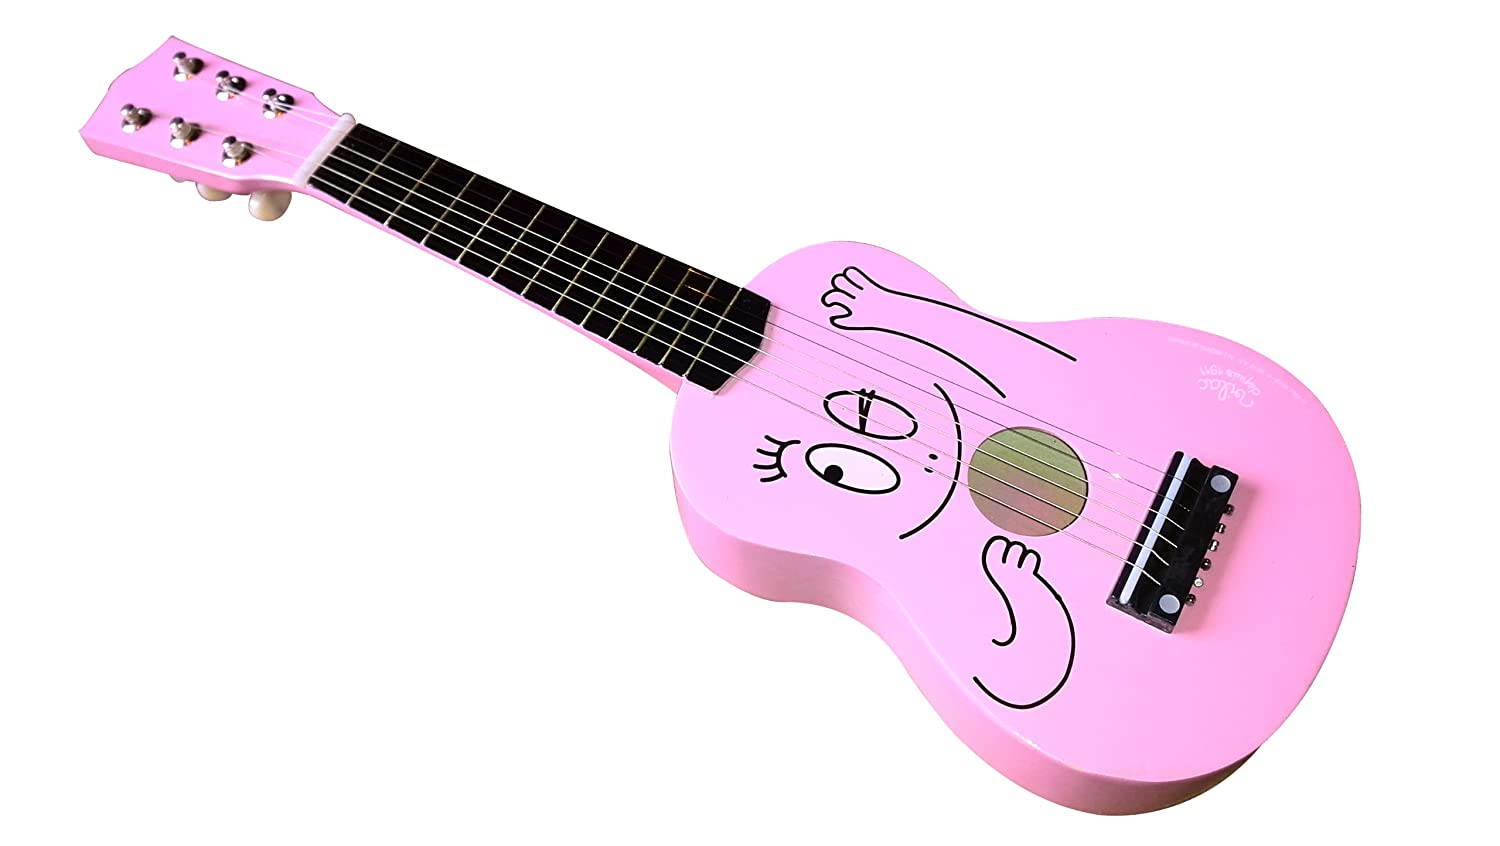 barbapapa gitarre von vilac f r kinder ab 3 jahren ebay. Black Bedroom Furniture Sets. Home Design Ideas